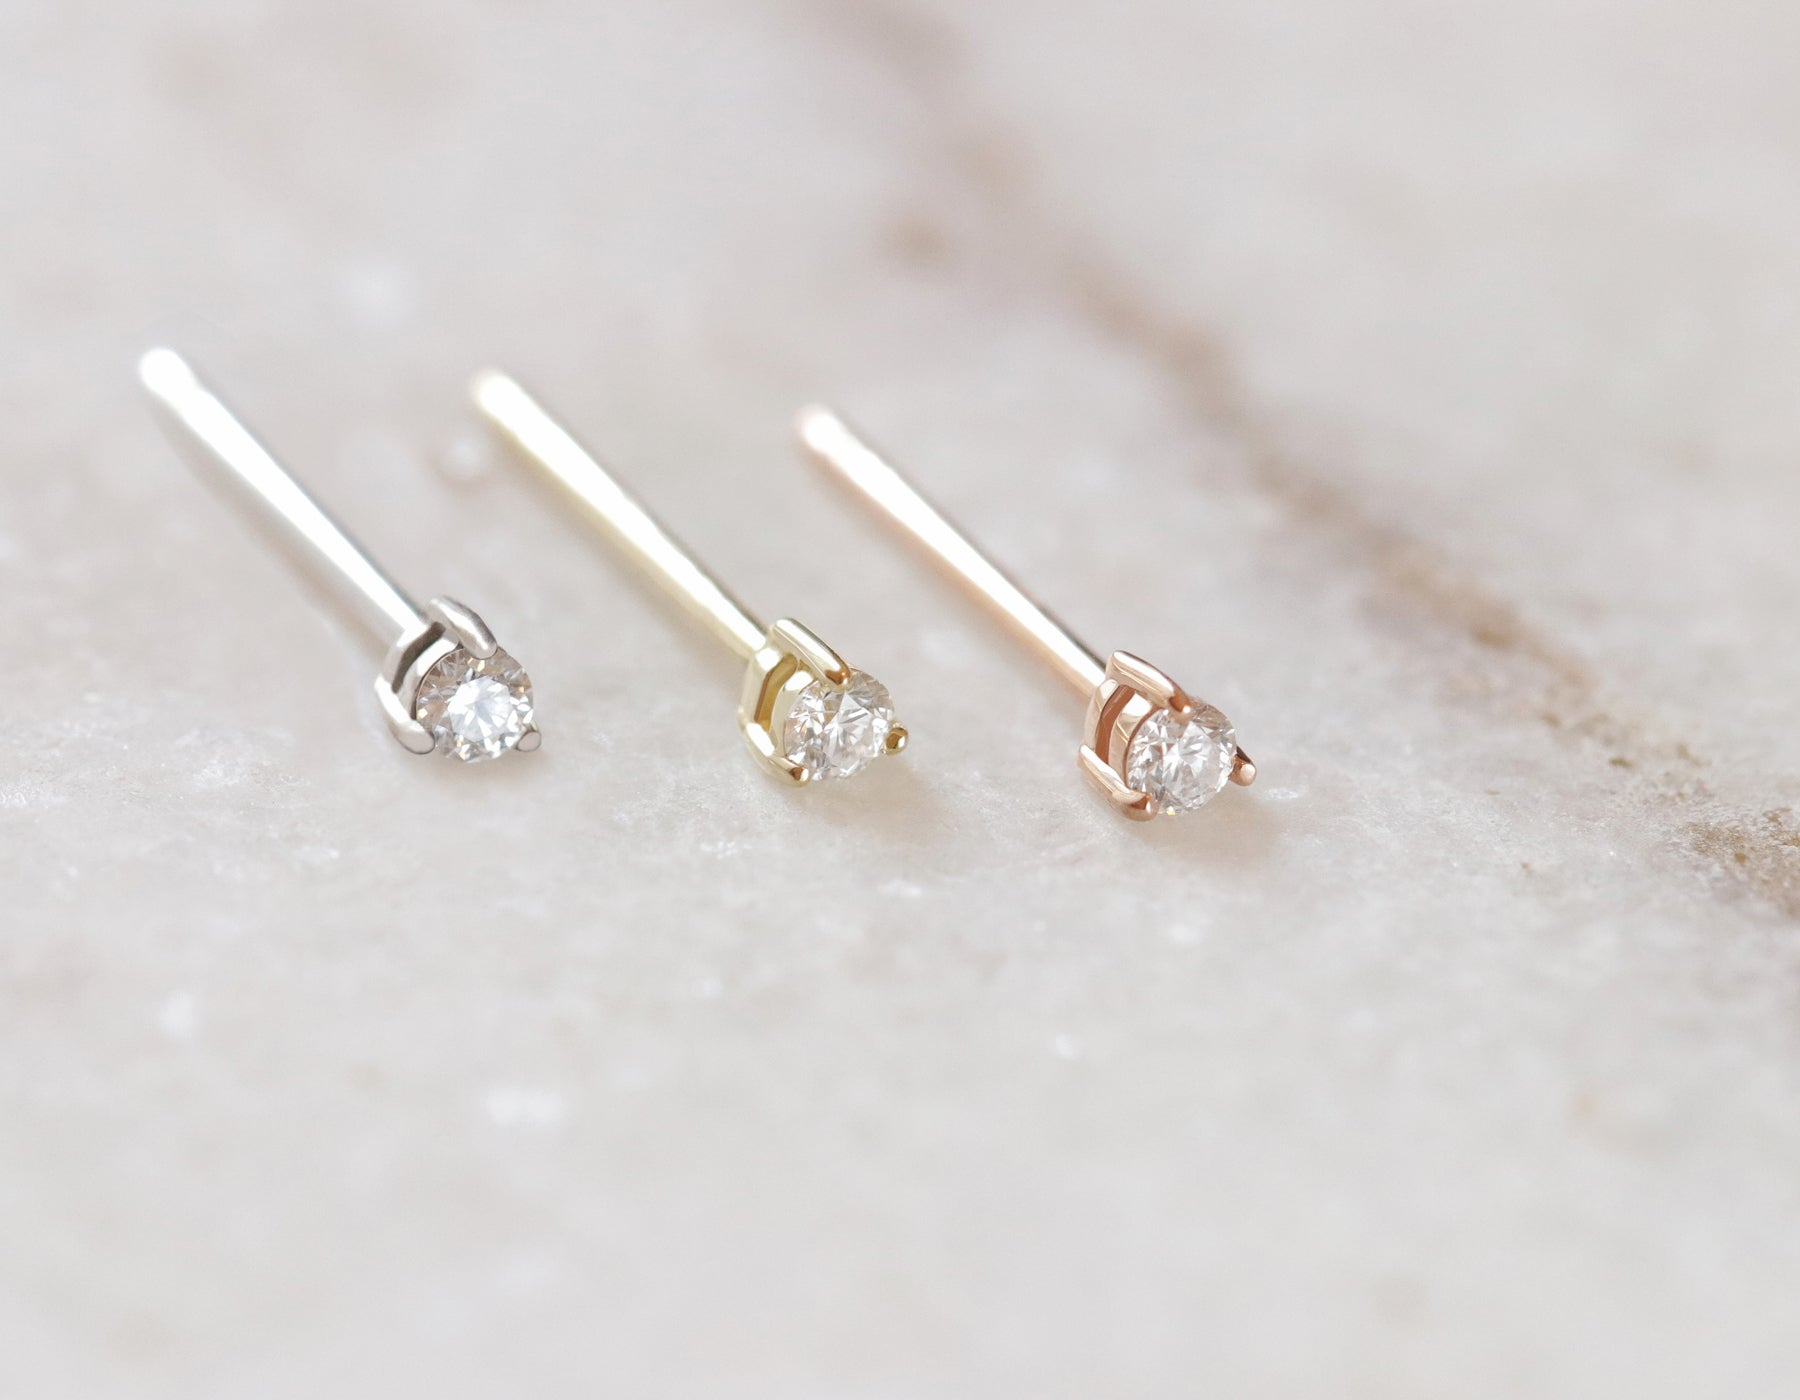 flower invisible rionore beautiful earrings set stud antwerp jewellery earstuds collection white dimond diamond shop unique